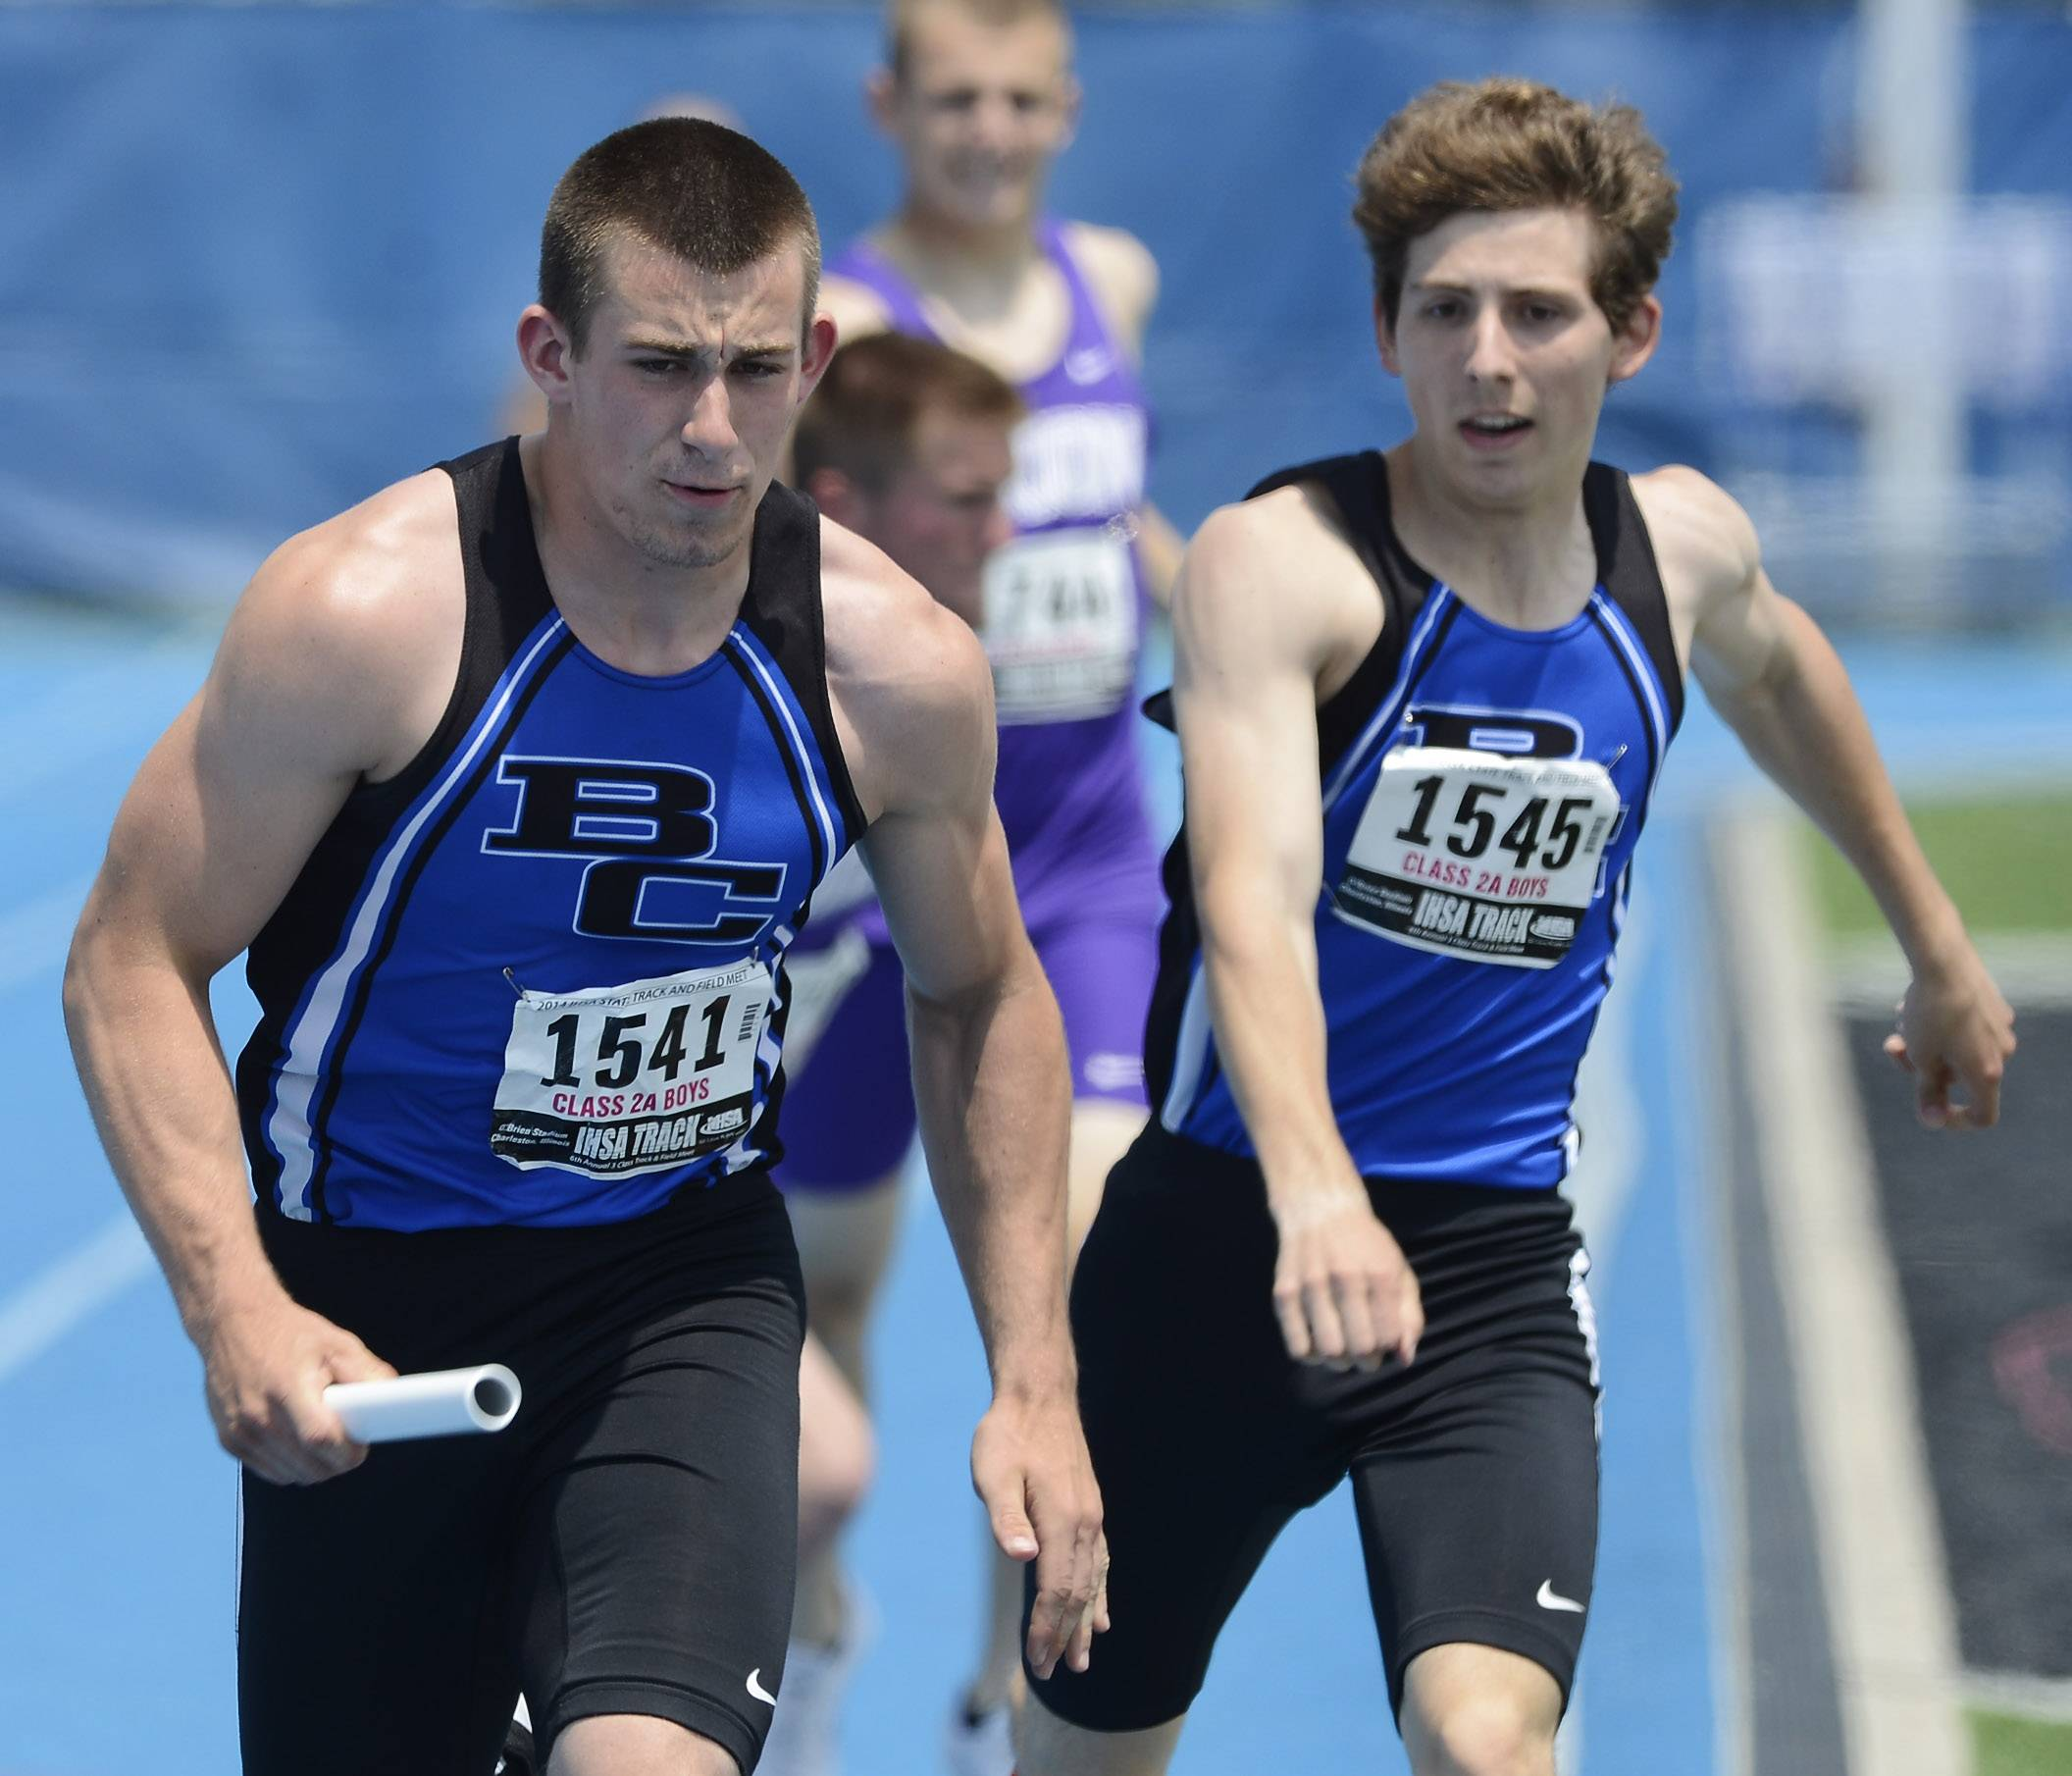 Burlington Central's Casey Matthews, left, runs after taking the baton from teammate Kyle Neubauer in the 4x400-meter relay during the Class 2A boys track and field state preliminaries in Charleston on Friday.